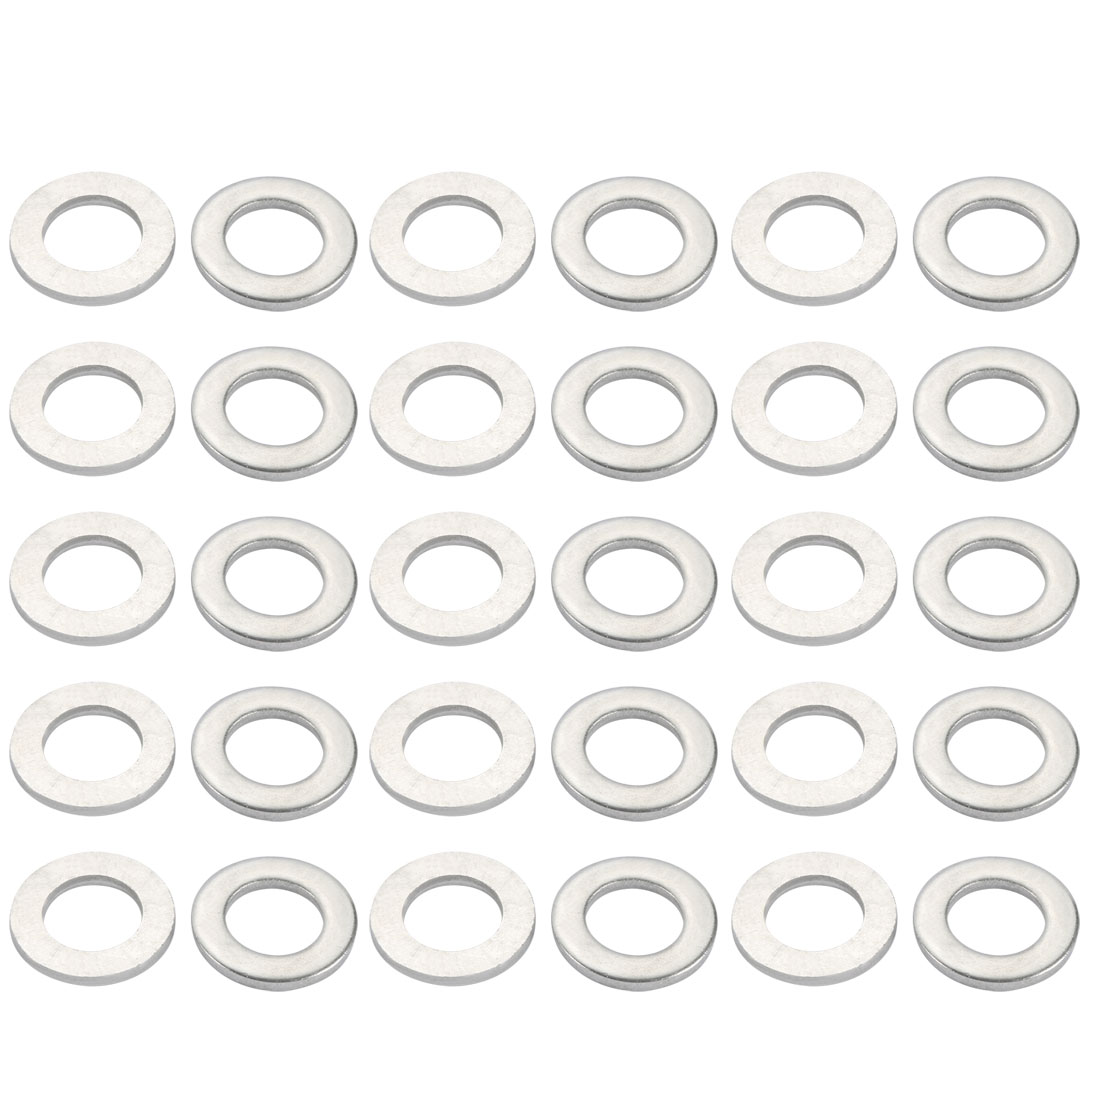 M16x30mmx3mm DIN125 316 Stainless Steel Flat Washer Silver Tone 30pcs